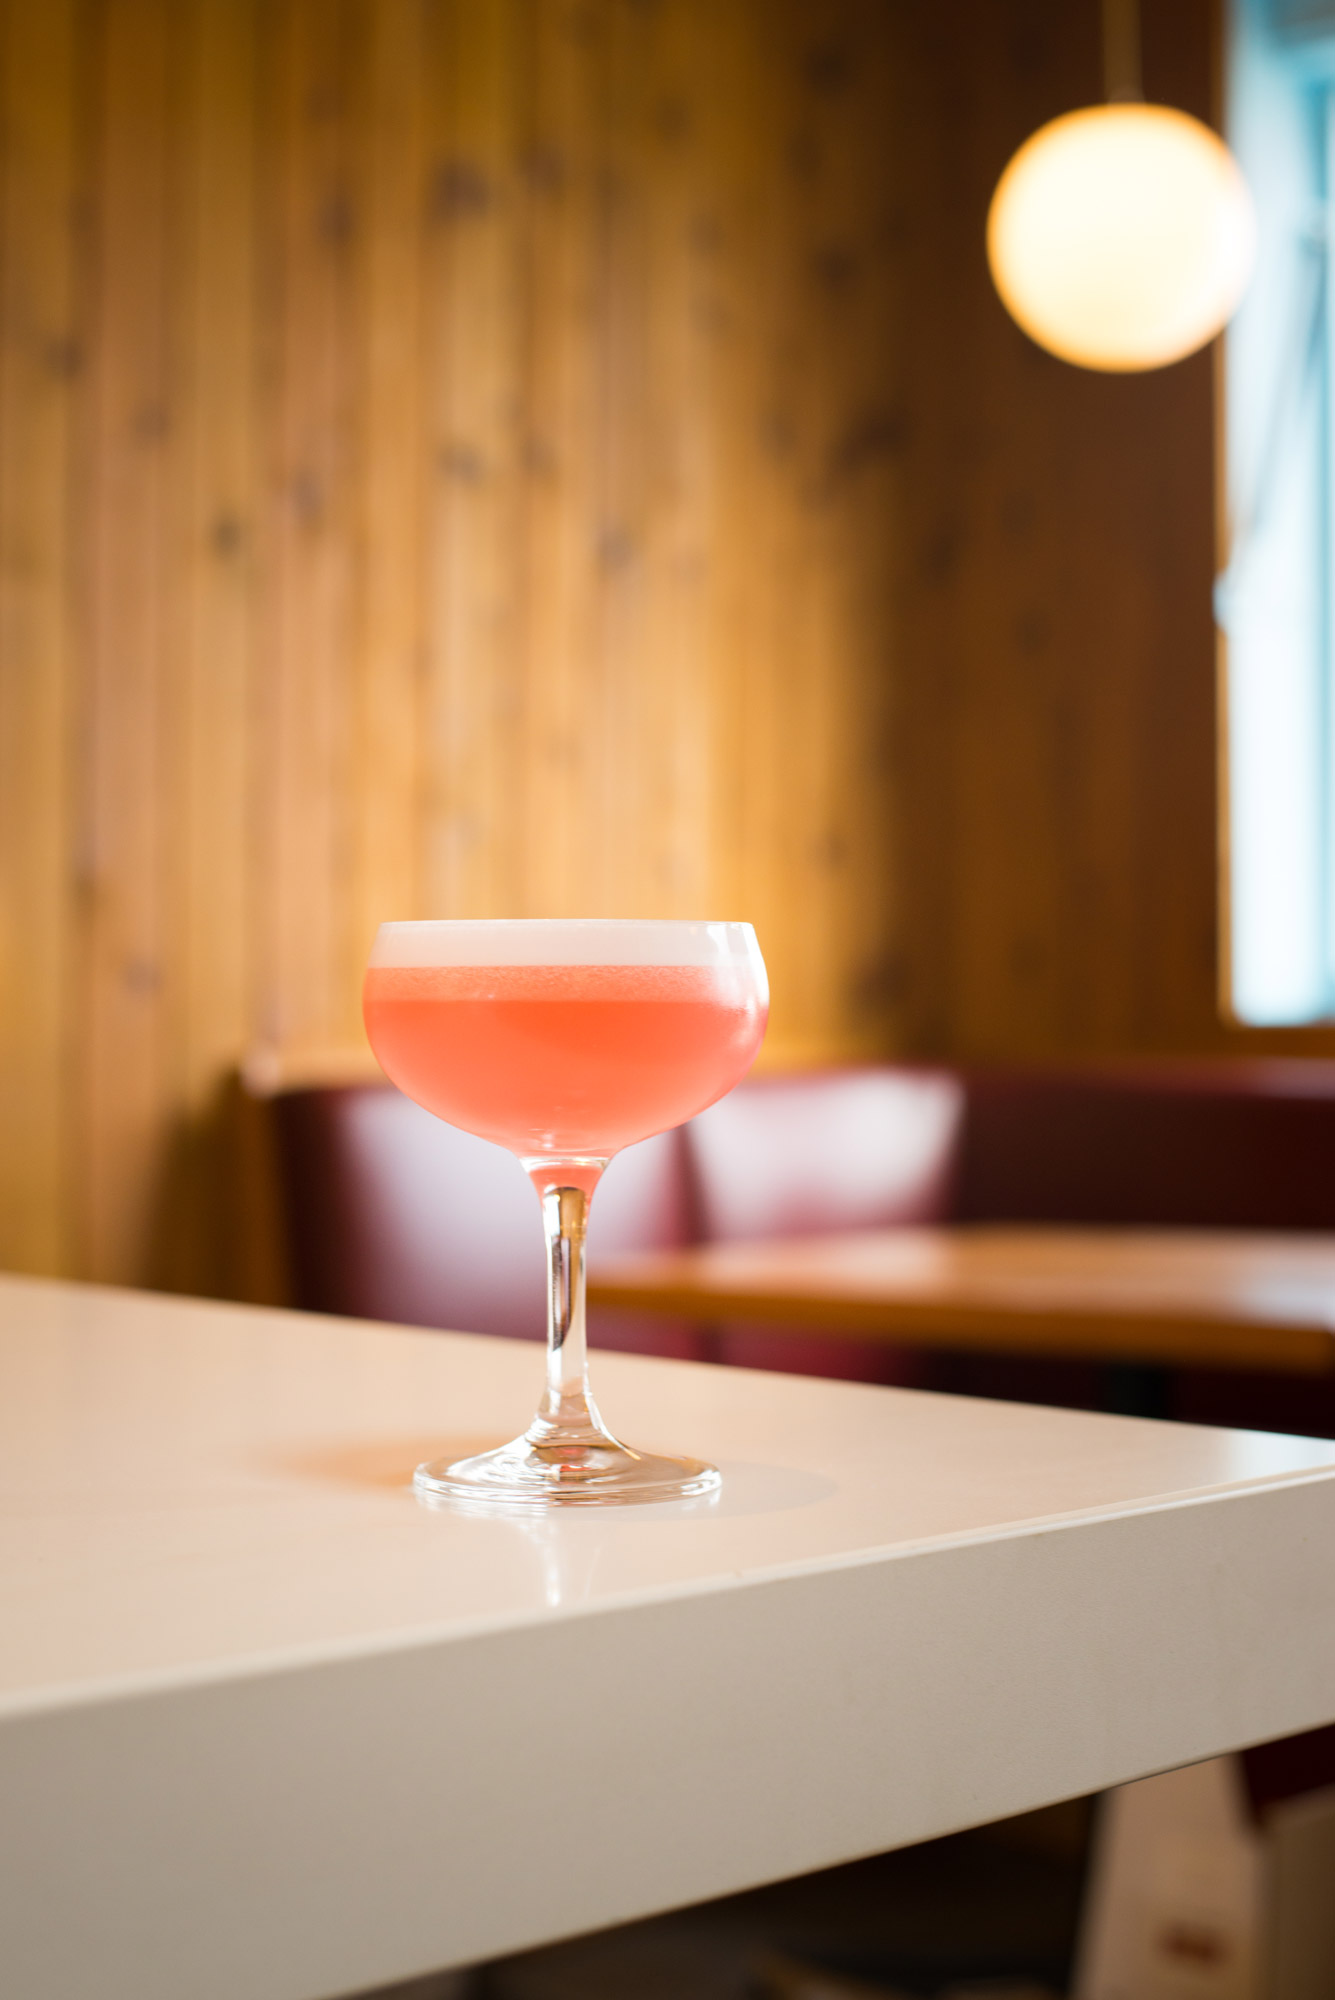 Clover Club - Ford's Gin, Martini & Rossi Dry Vermouth, Raspberry, Lemon, Egg White, Peychaud's Bitters